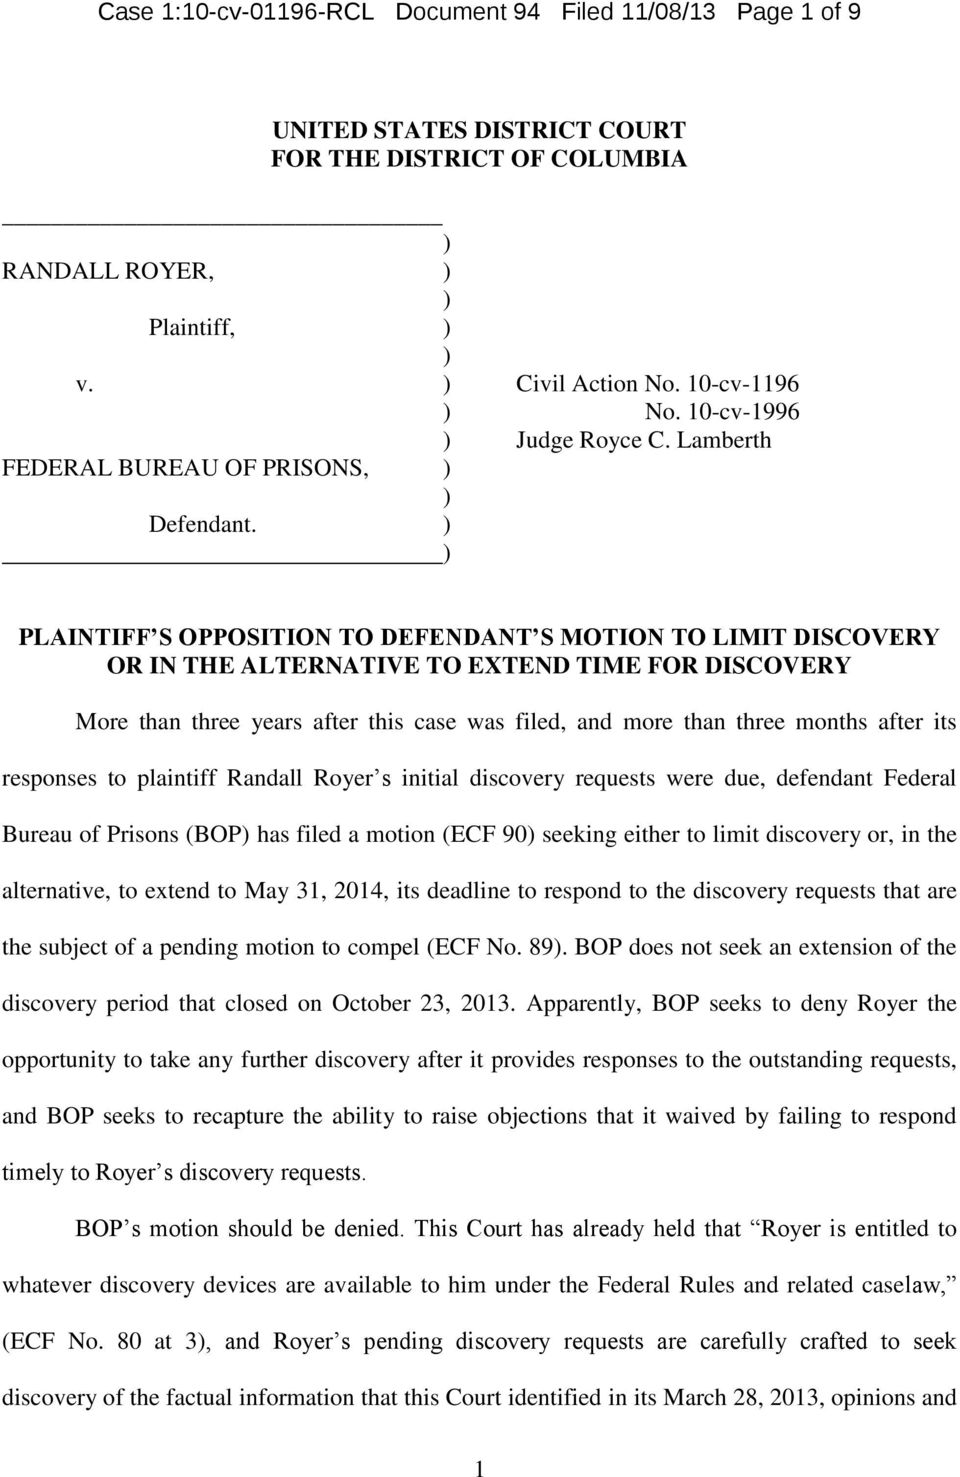 Case 1:10-cv RCL Document 94 Filed 11/08/13 Page 1 of 9